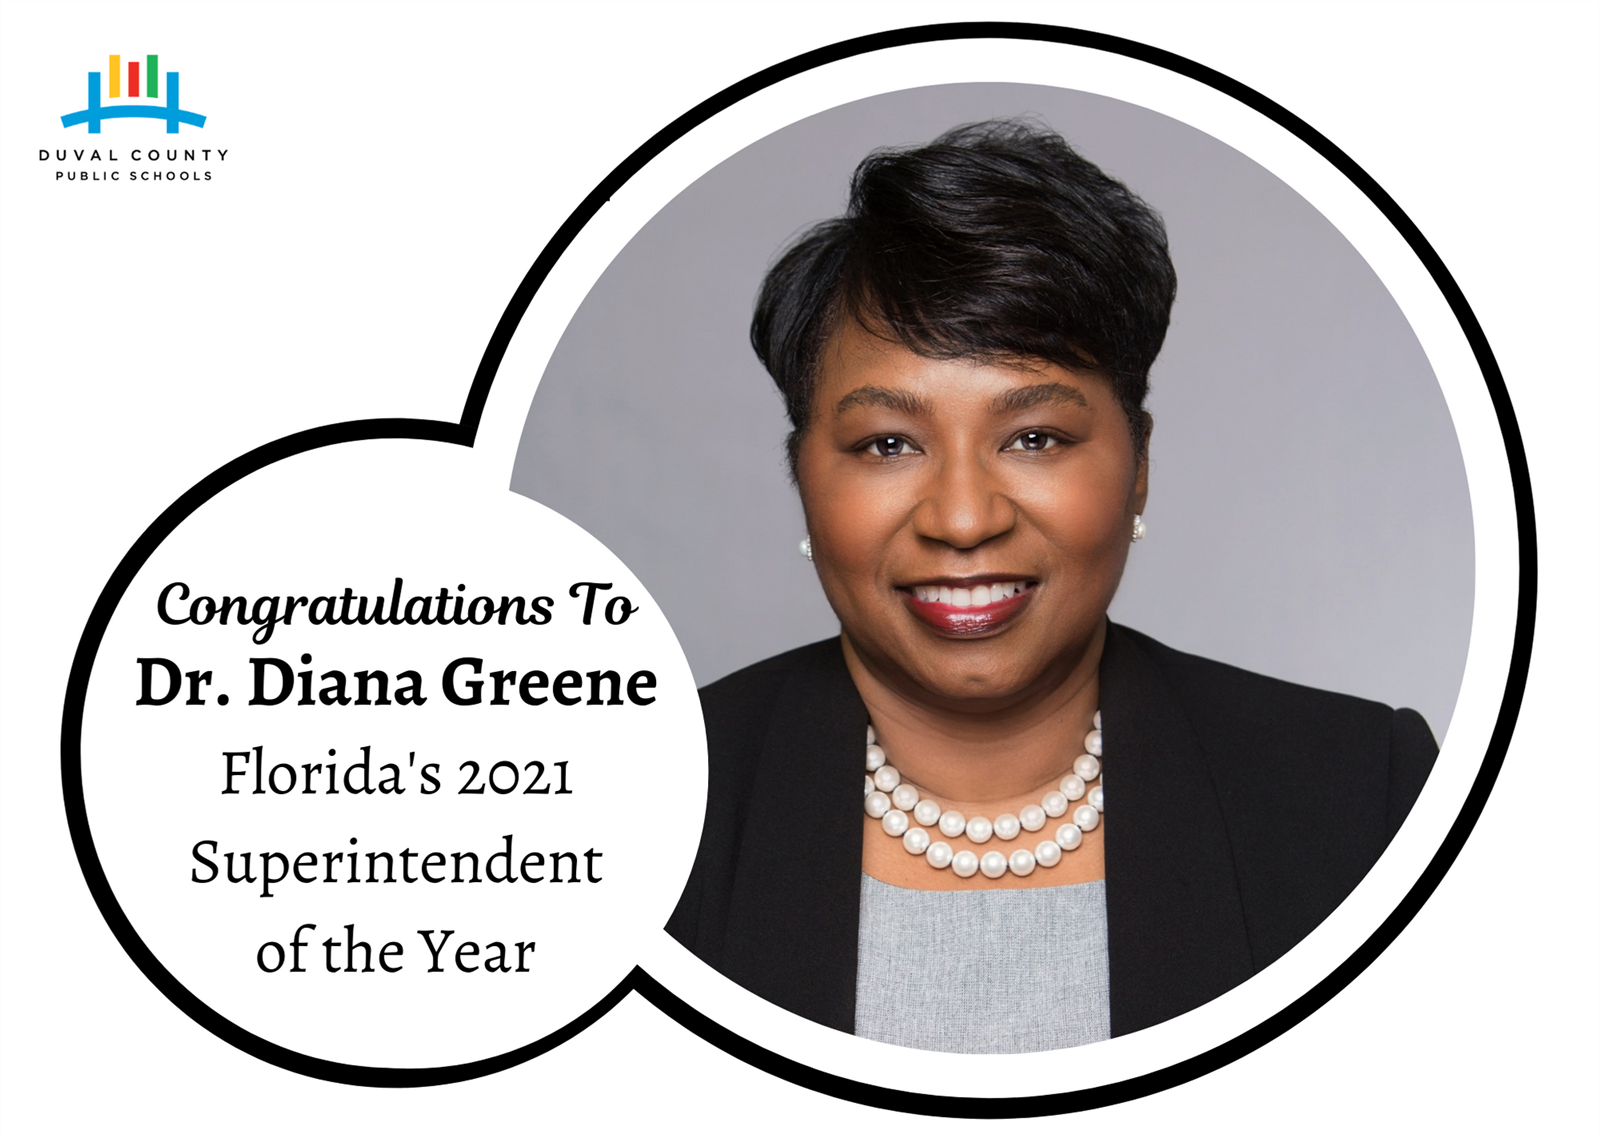 Florida's 2021 Superintendent of the Year: Dr. Diana Greene